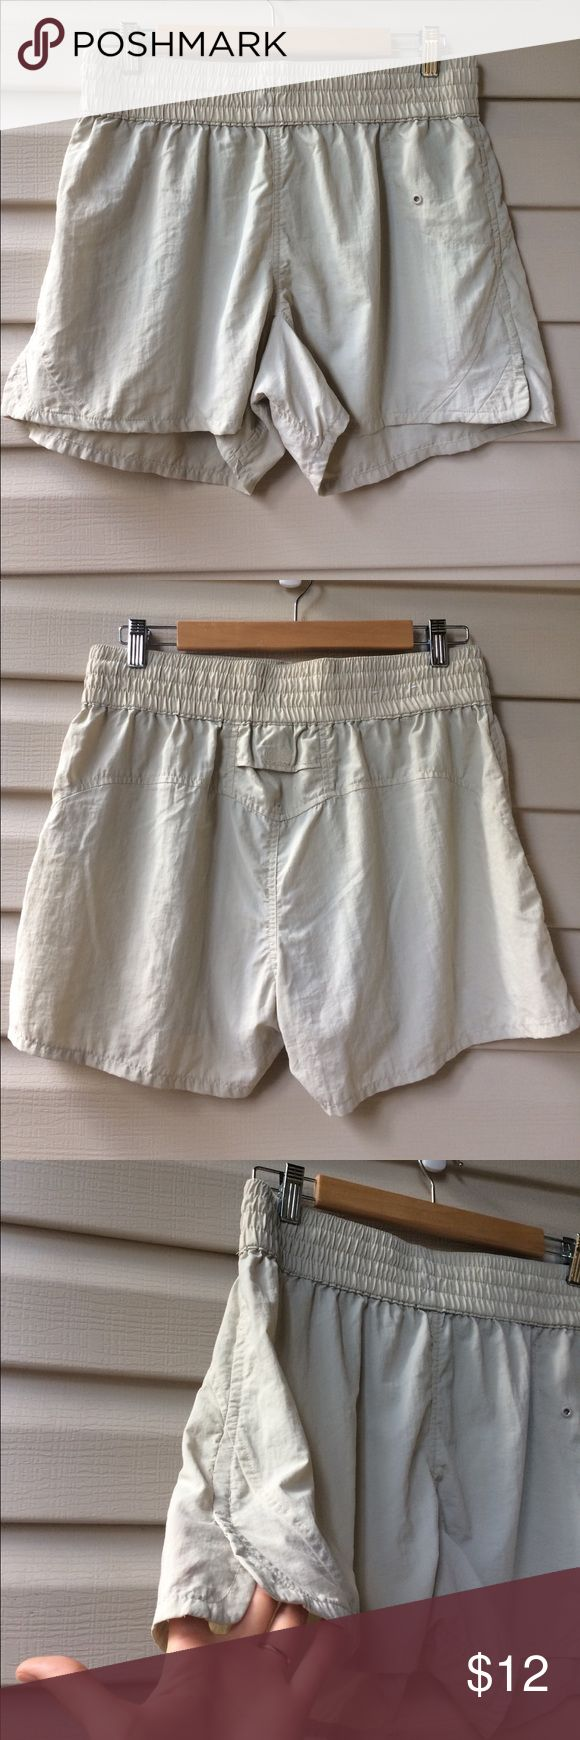 Fishing Shorts Women's lightweight fishing/outdoor shorts with drawstring and small side slit for maneuverability. This shorts very comfortable and dry very quickly! There is a small pocket on the back of the shorts as well as a hidden pocket on the inside World Wide Sportsman Shorts